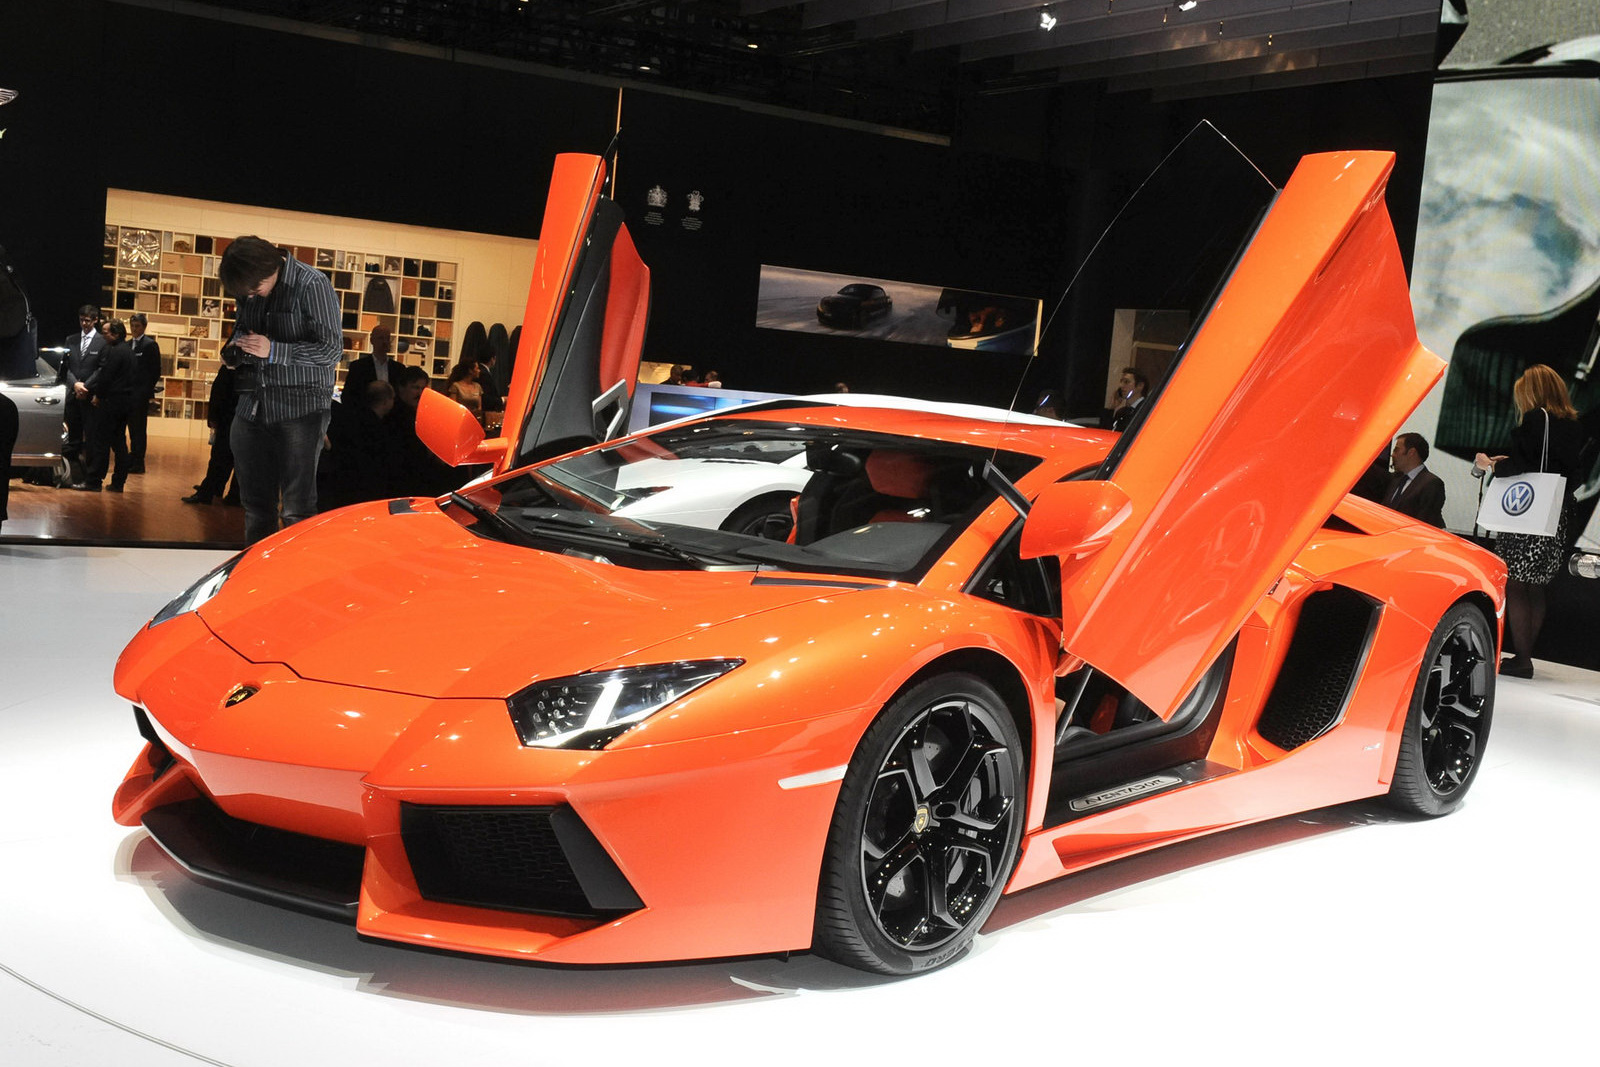 Lamborghini Aventador LP700-4 Wallpaper Gallery Free Download